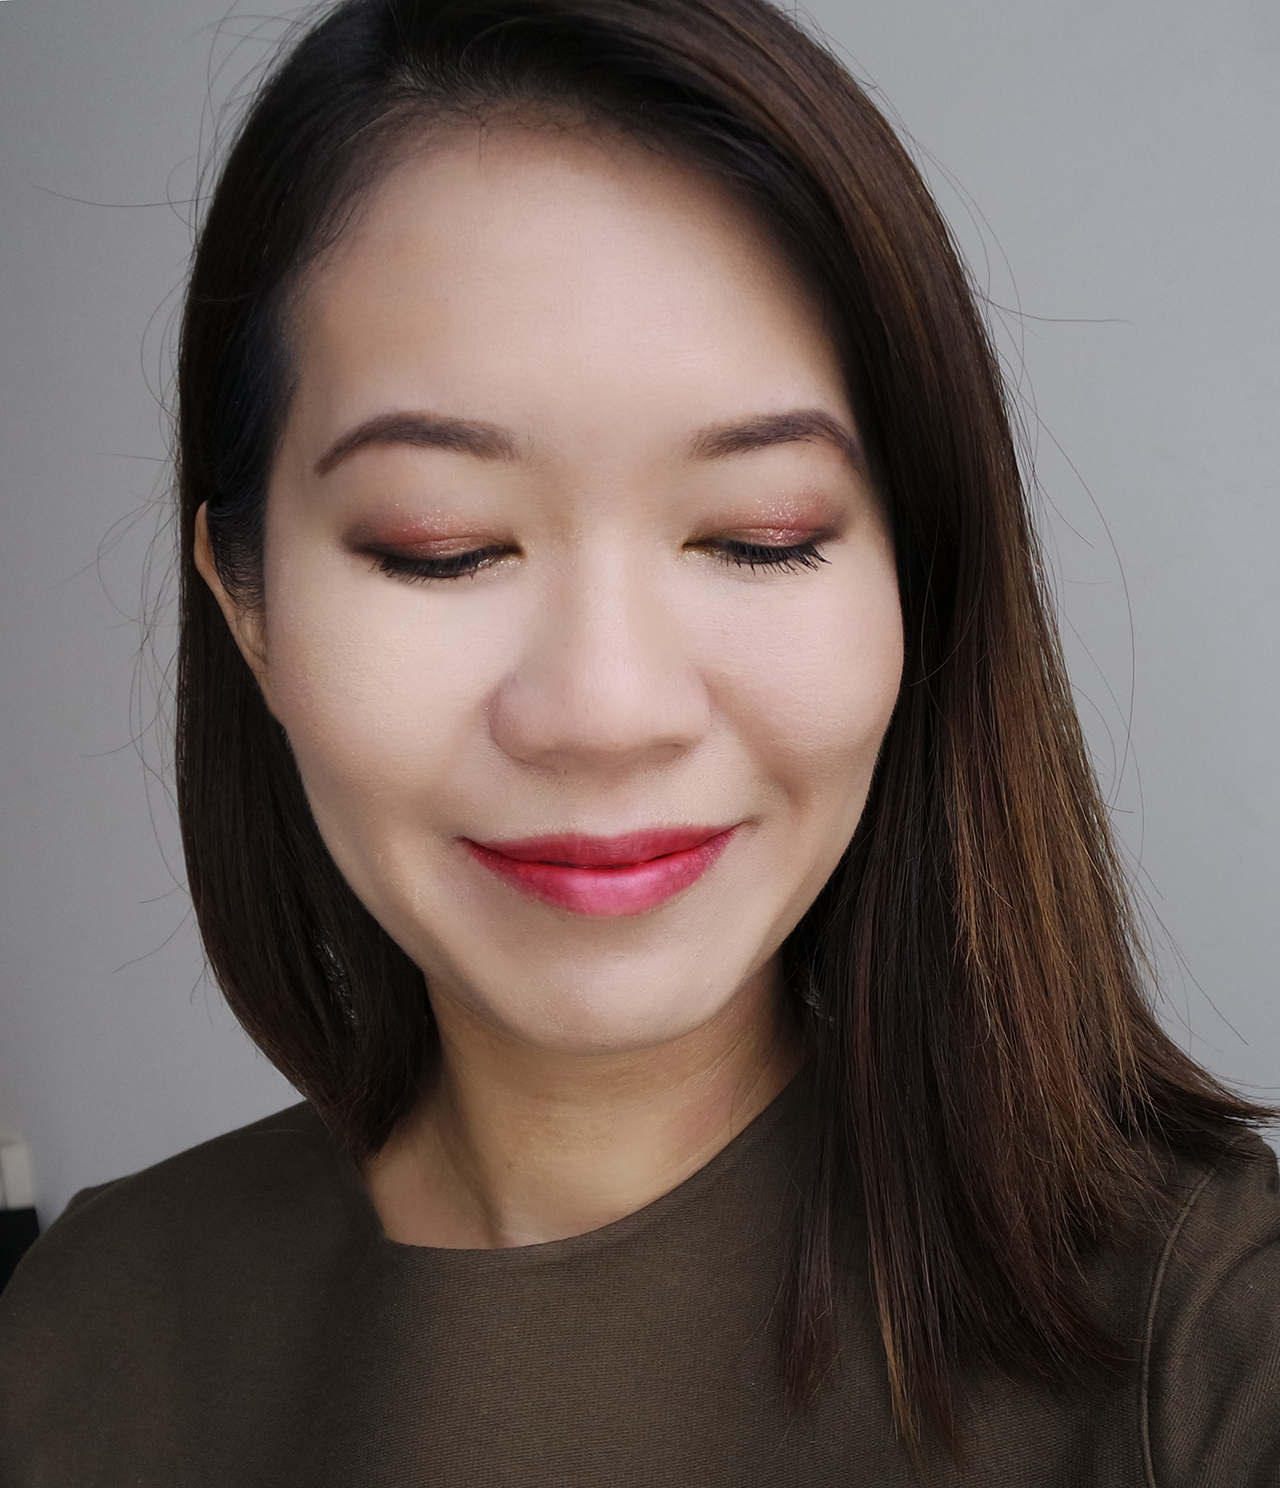 Tom Ford Extreme Collection makeup look